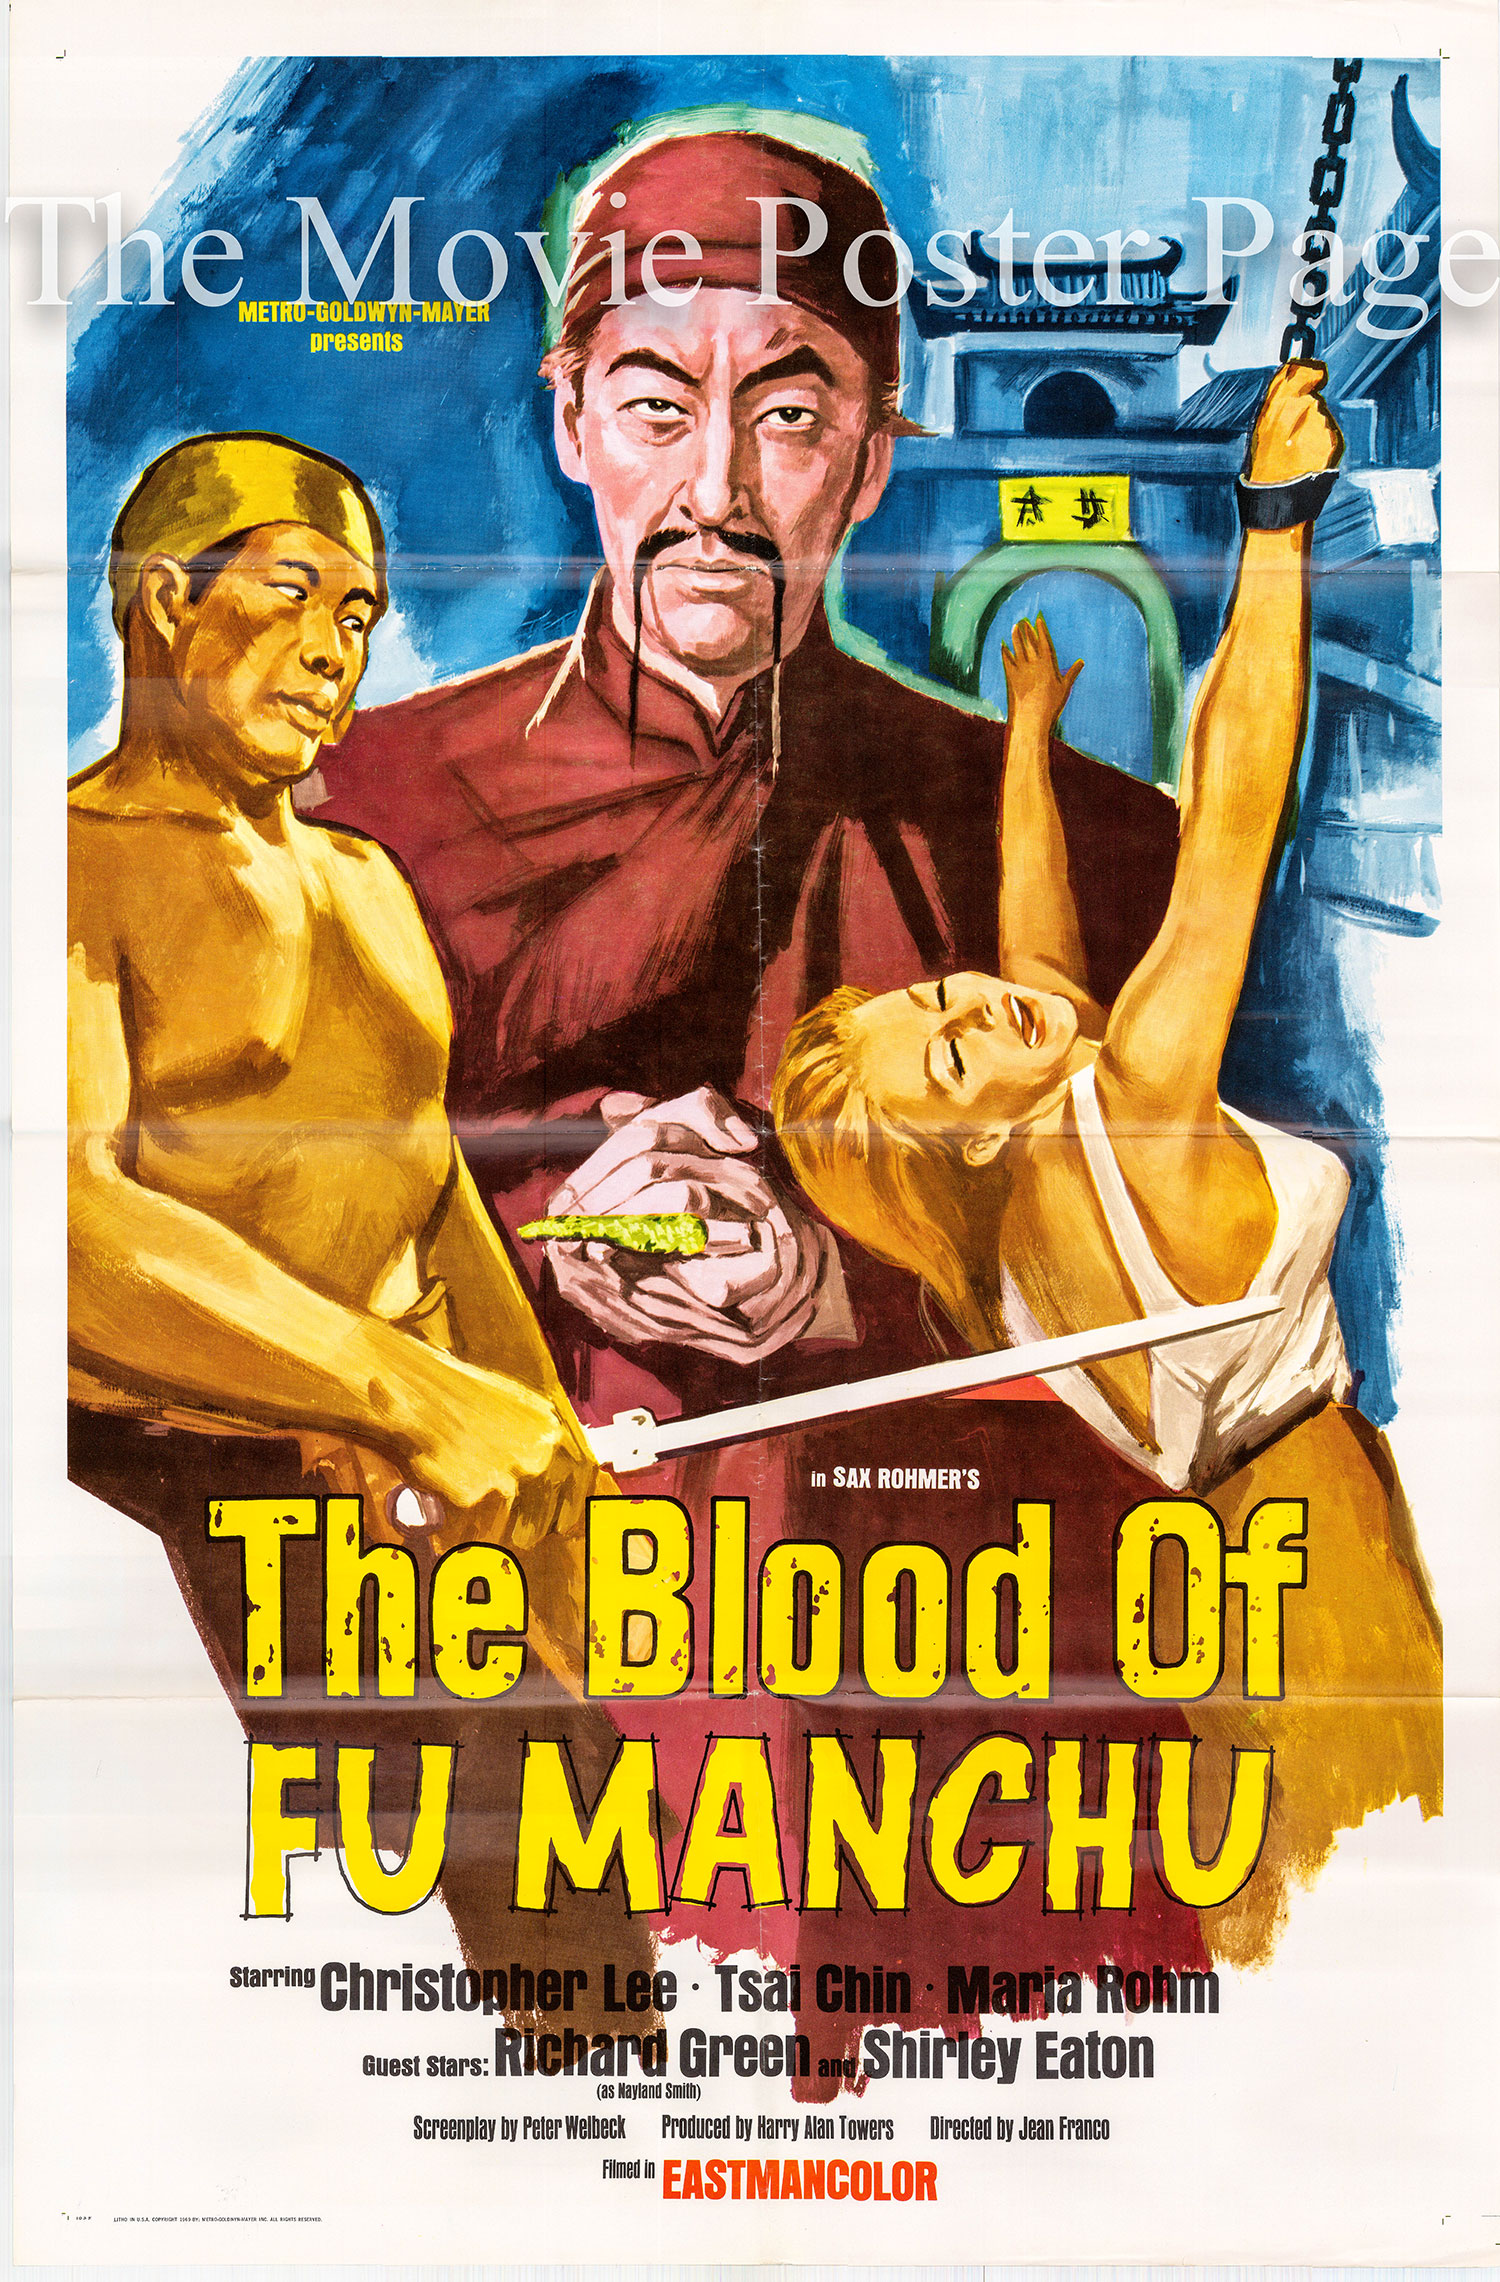 Pictured is a US one-sheet for the 1968 Jesus Franco film The Blood of Fu Manchu starring Christopher Lee as Fu Manchu.